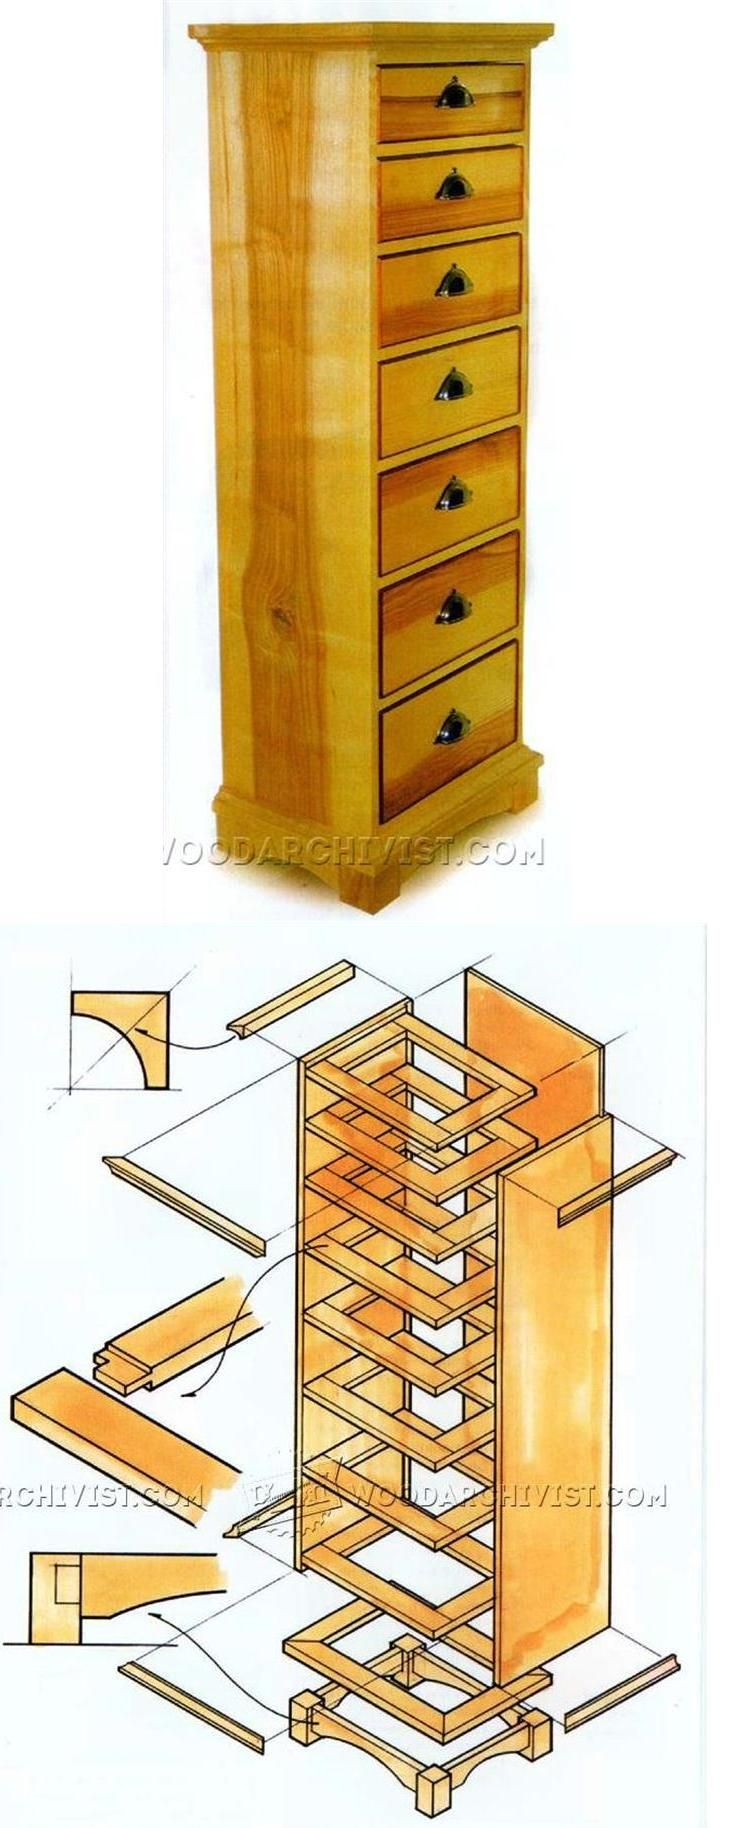 High Chest of Drawers Plans - Furniture Plans and Projects | WoodArchivist.com